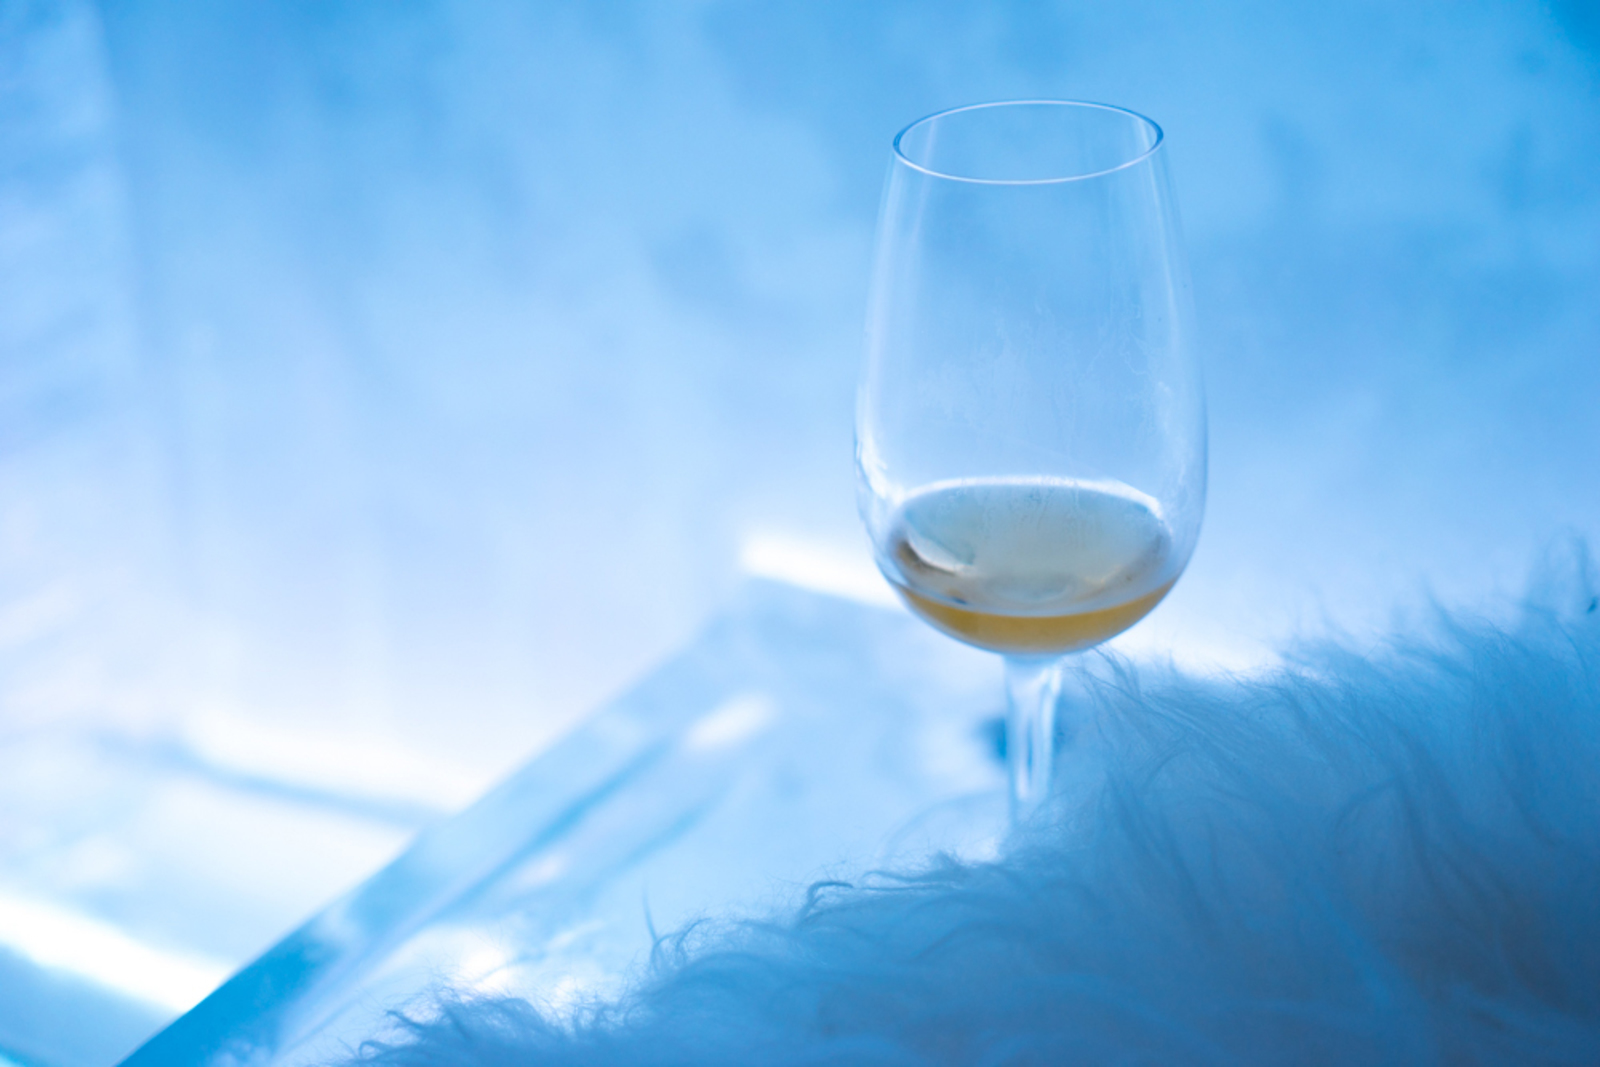 Winter Storm, The Latest Experimental Release From Glenfiddich photo